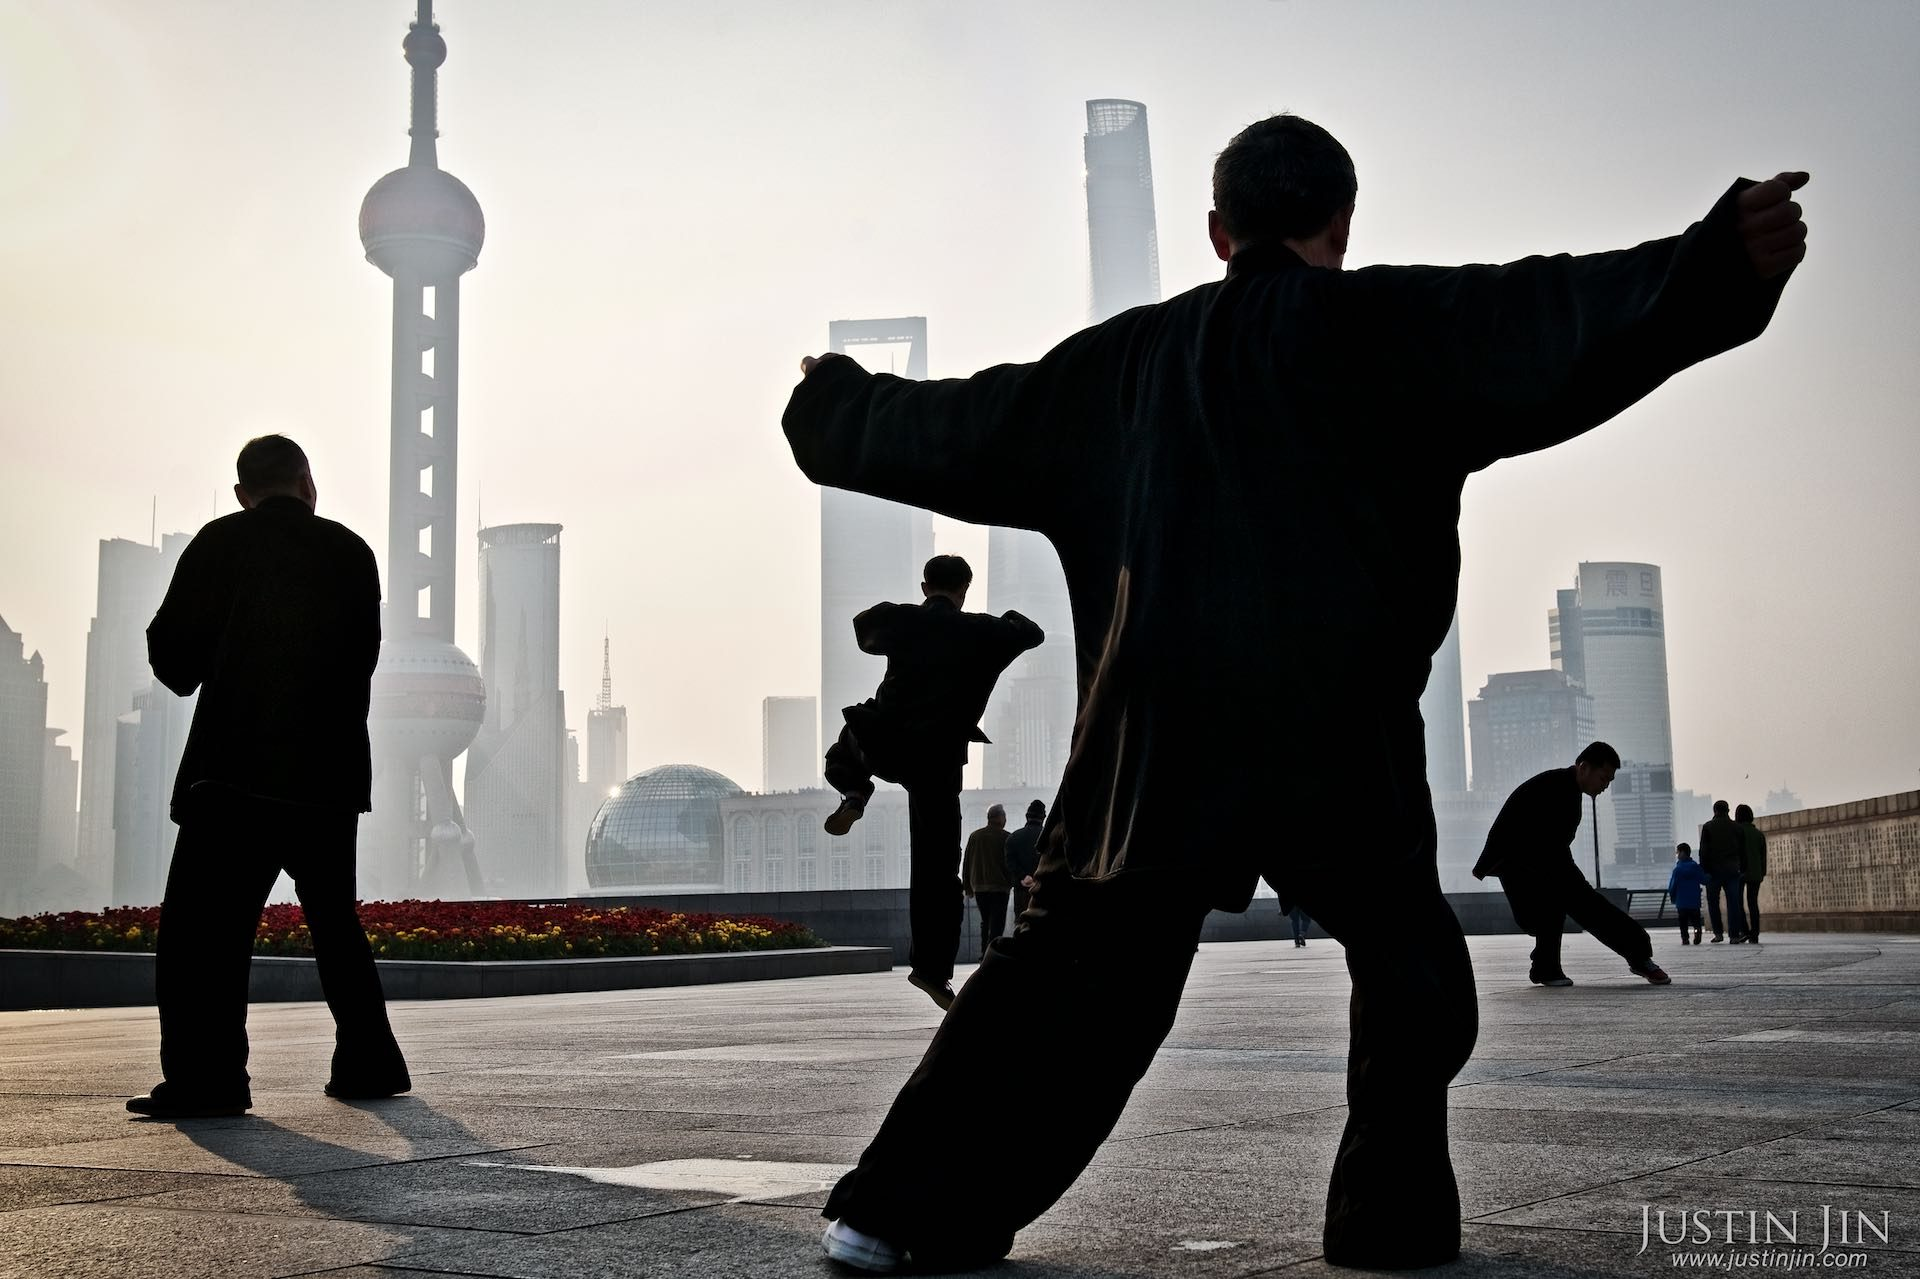 Early-risers practise tai-chi in front of the Pudong financial district, the earliest example of China's planned urbanization.